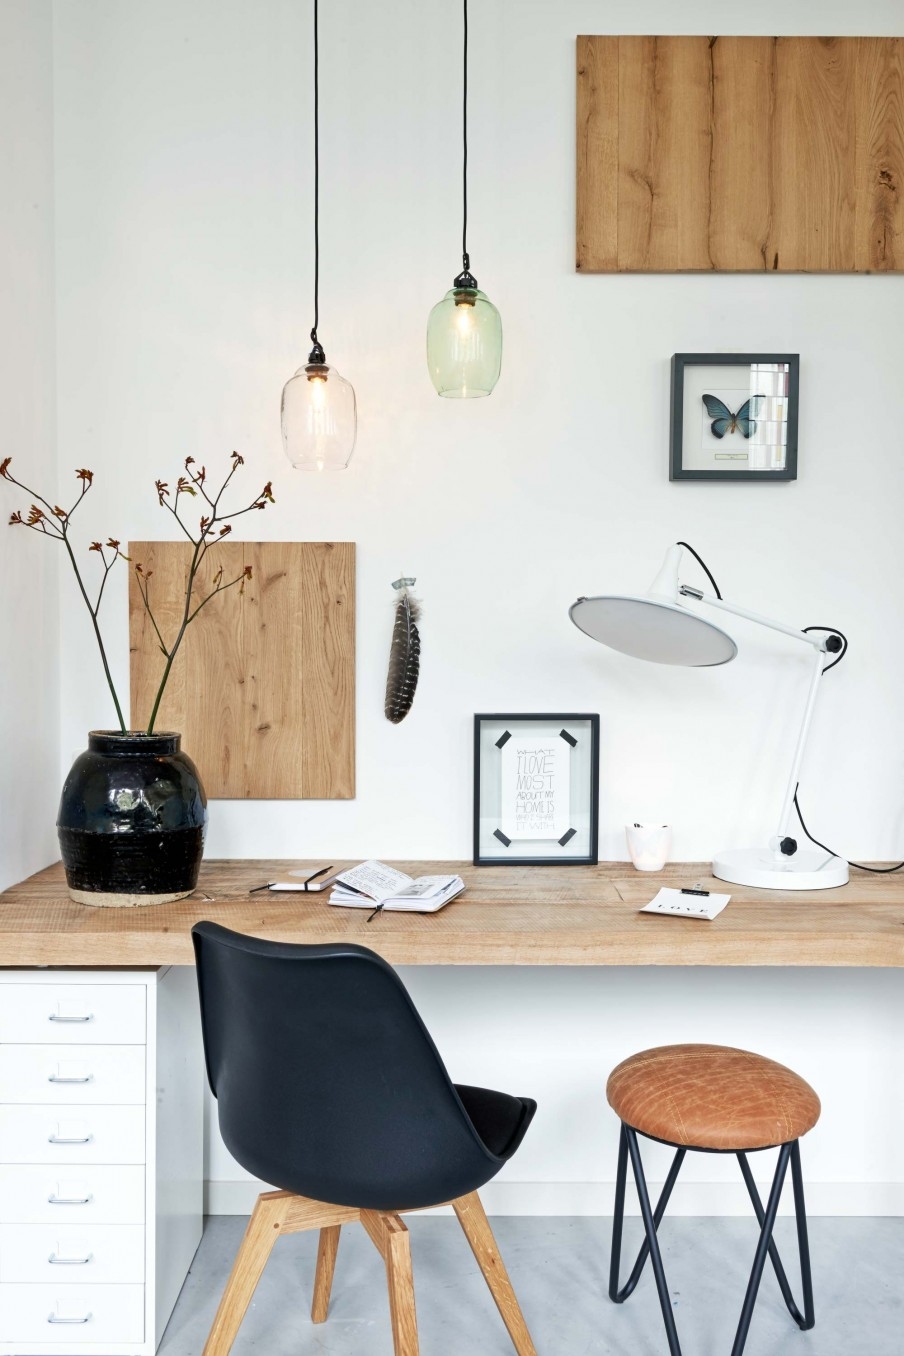 Am nager un bureau chez soi lili in wonderland - Photo deco kantoor ...